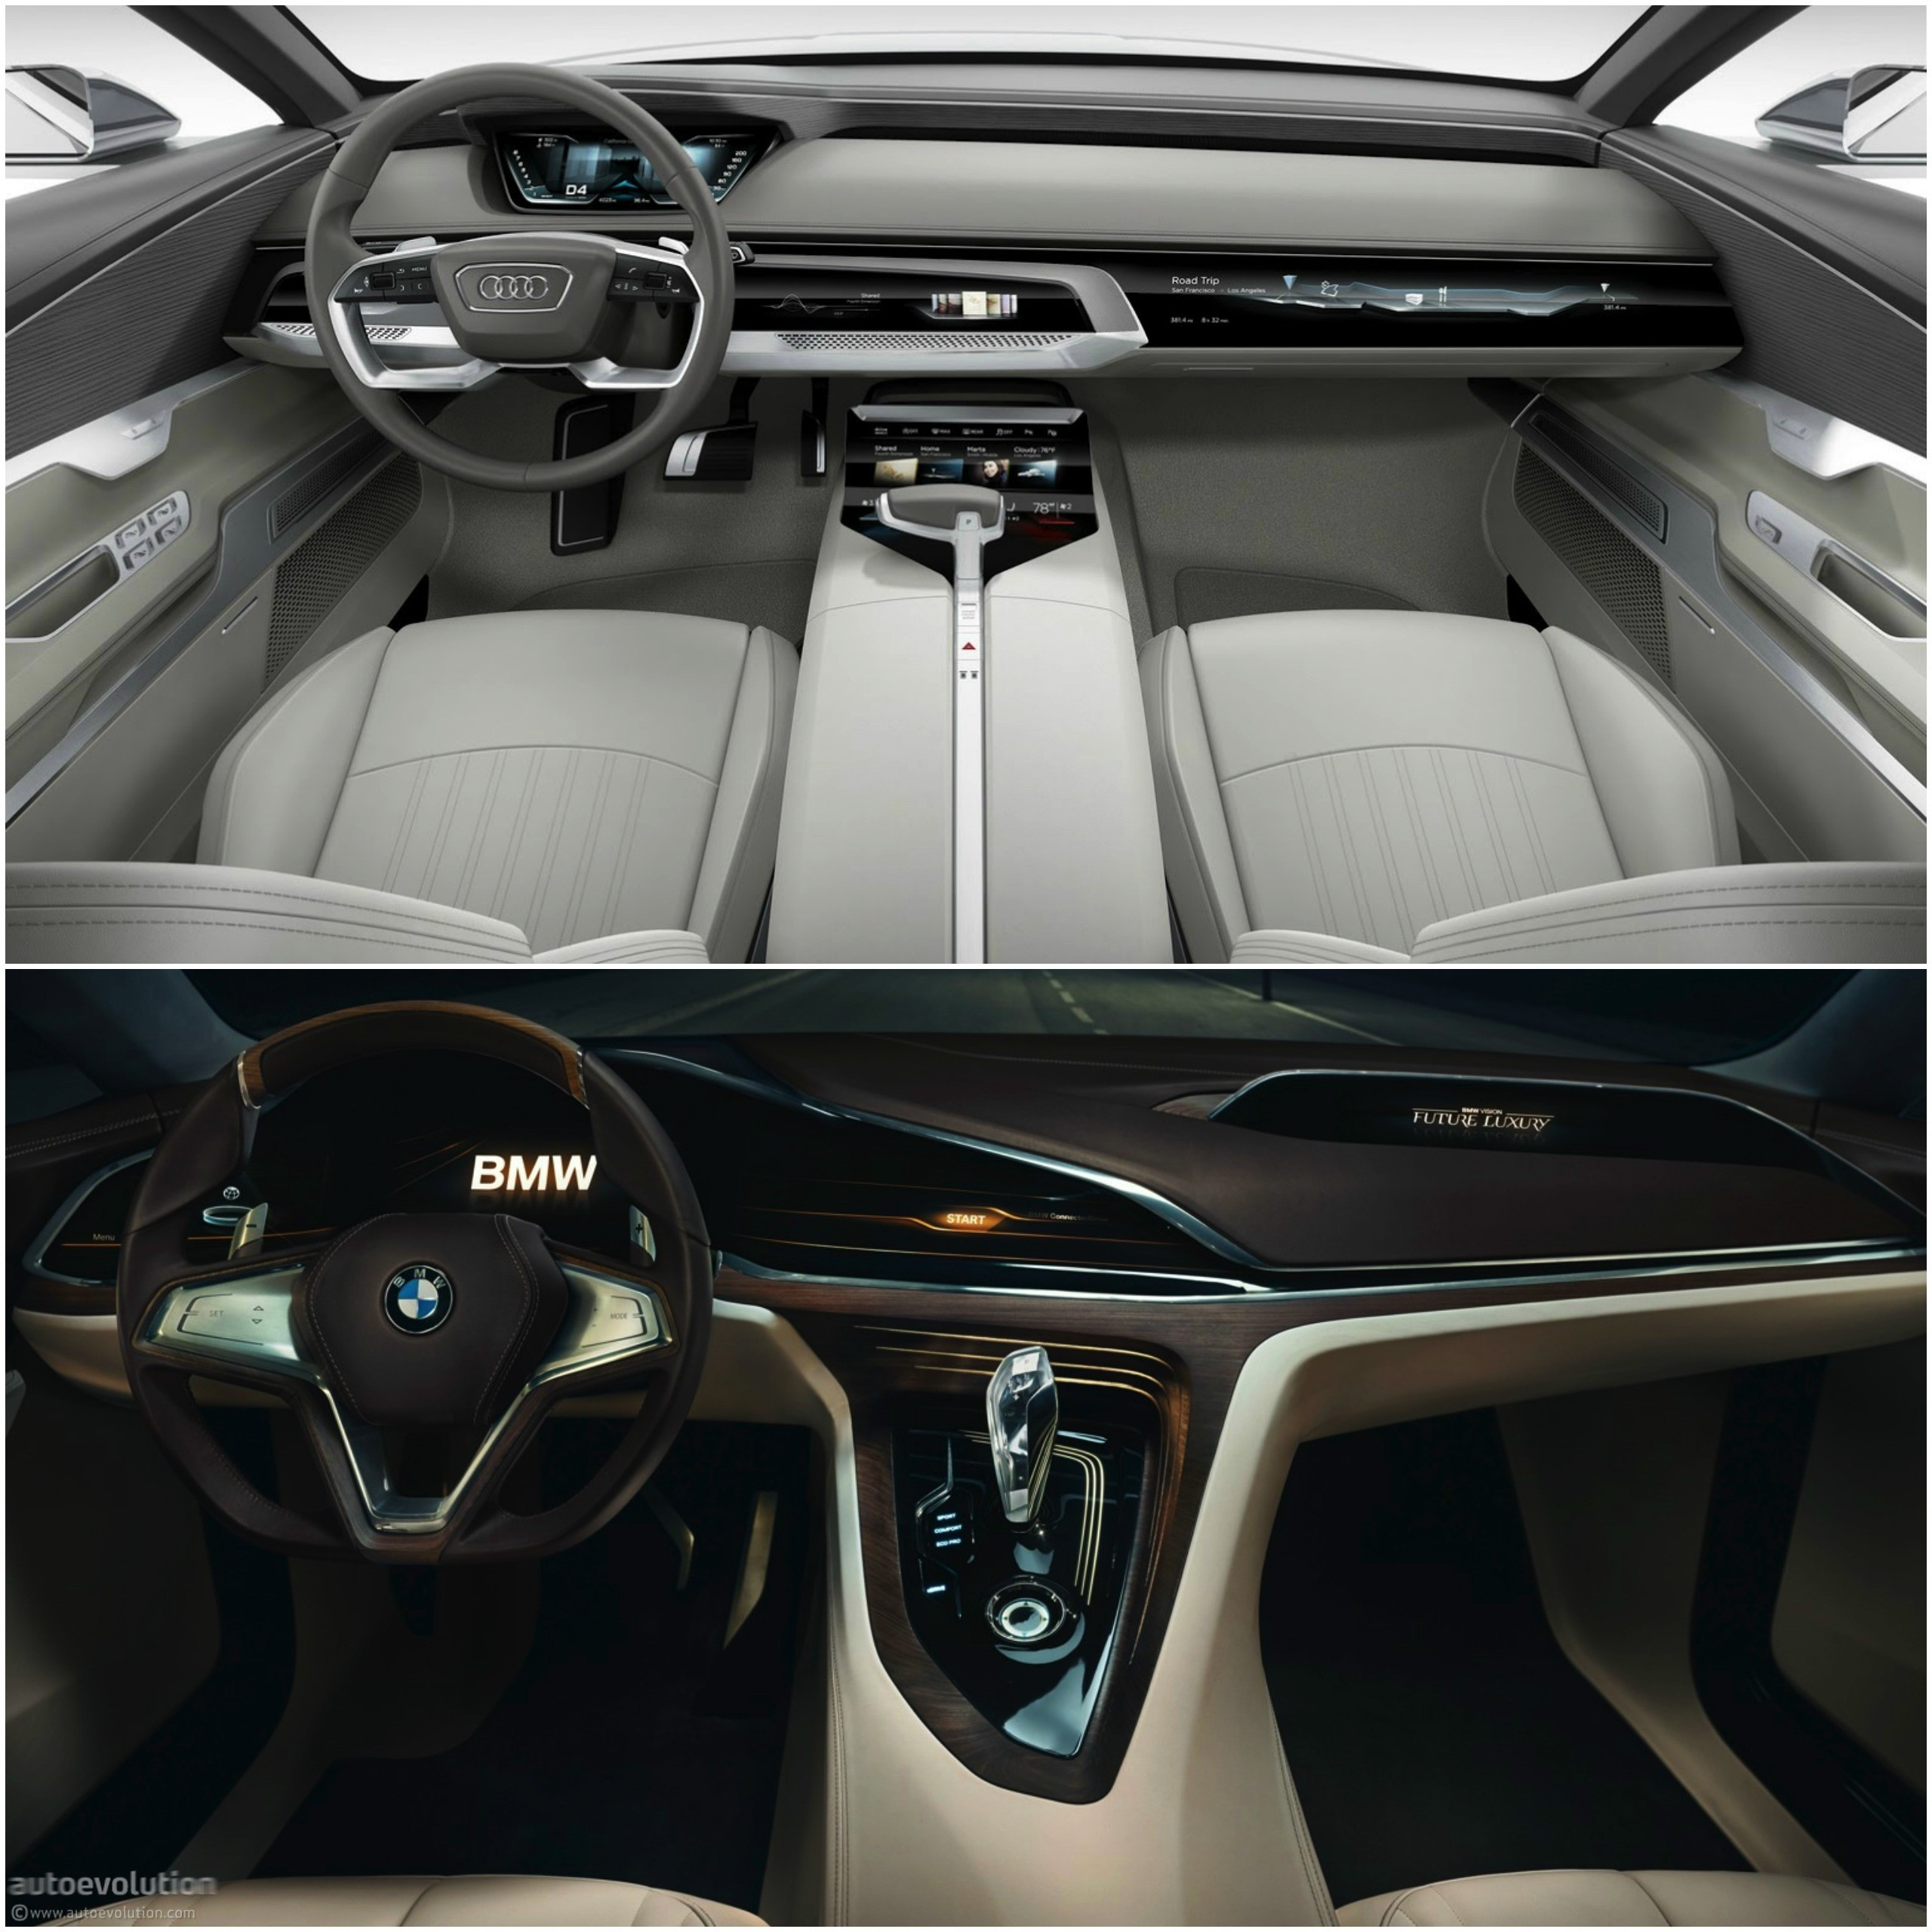 Photo Comparison Bmw Vision Future Luxury Concept Versus